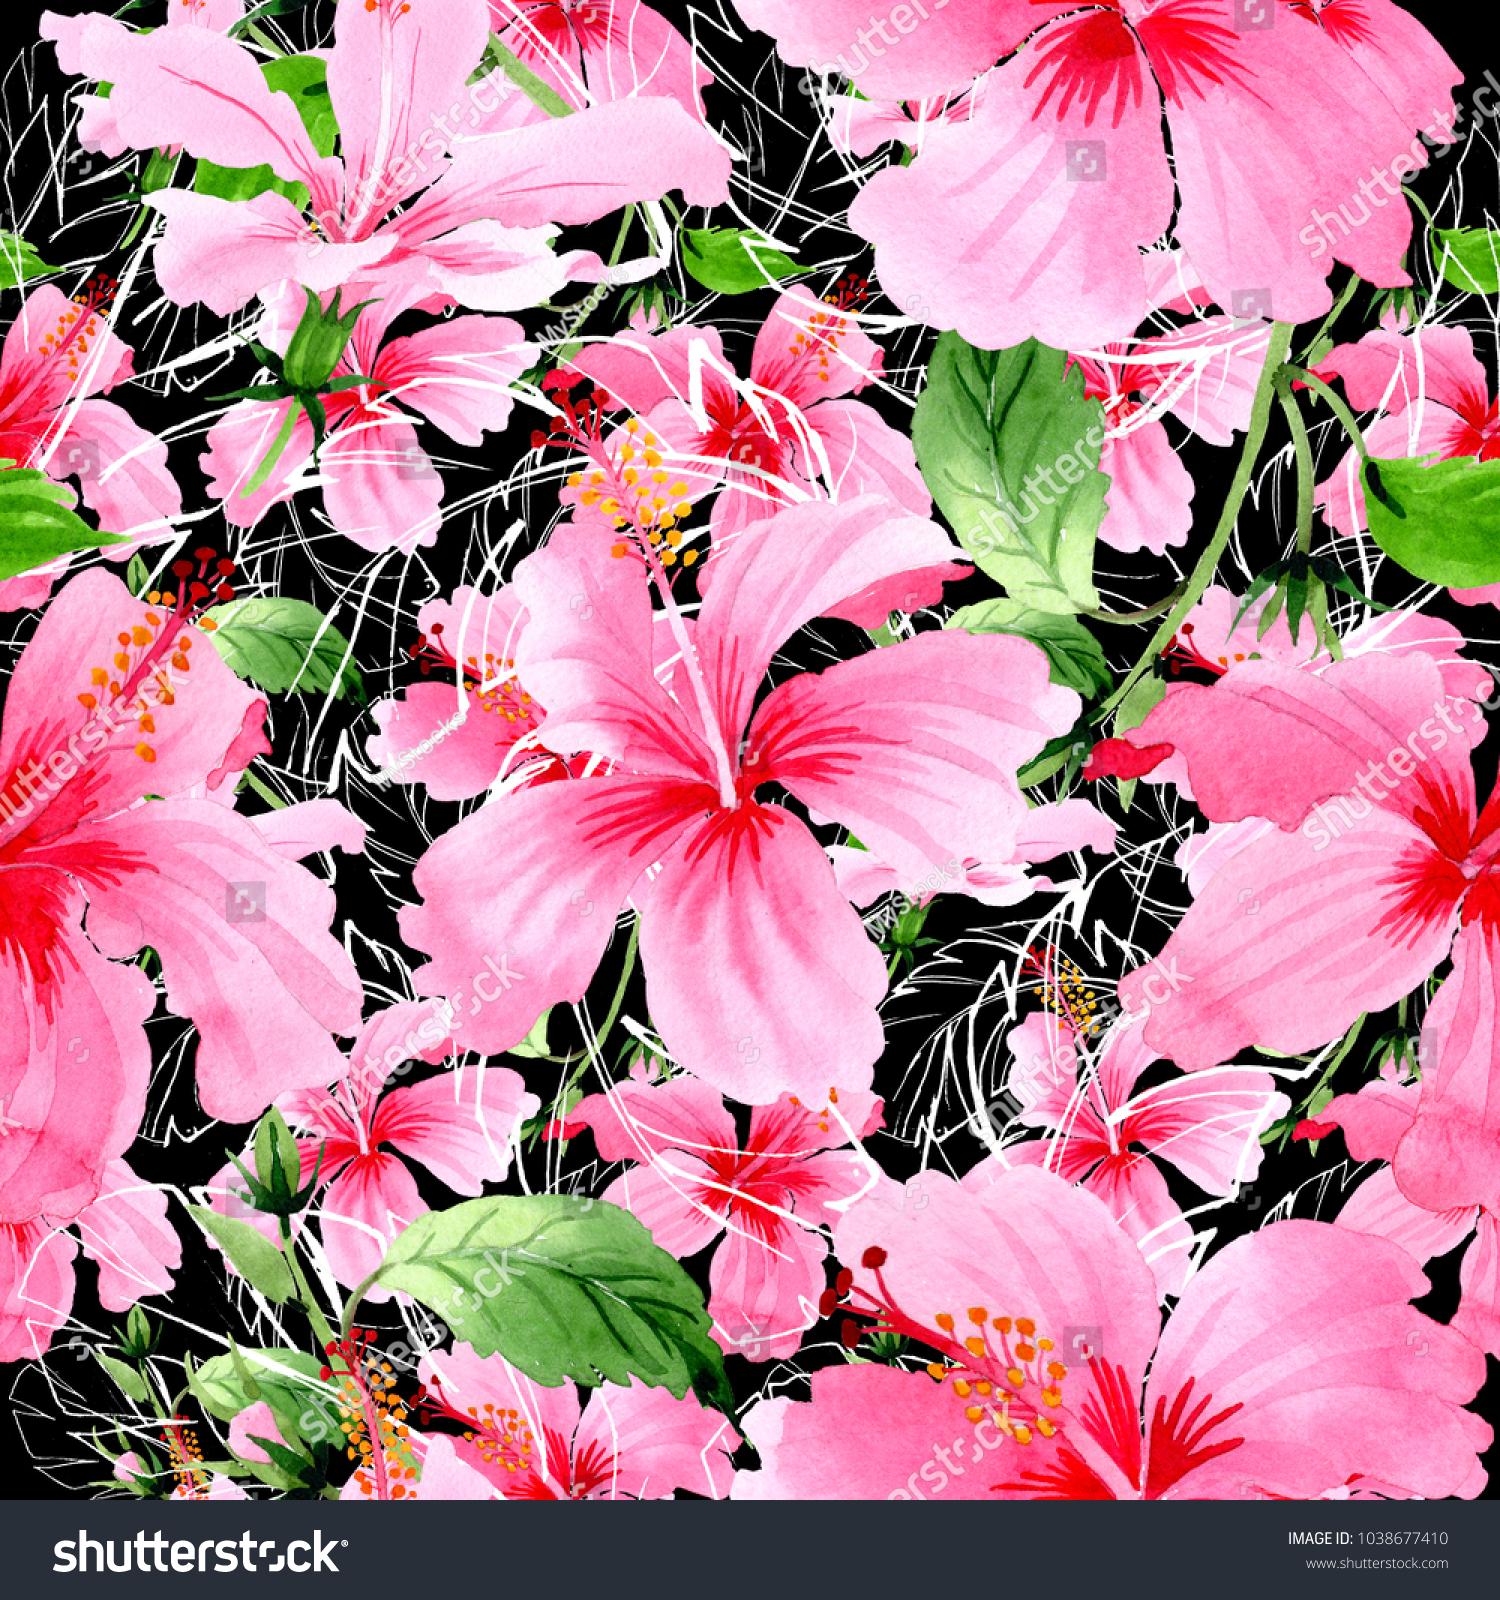 Wildflower hibiscus pink flower pattern watercolor stock wildflower hibiscus pink flower pattern in a watercolor style full name of the plant izmirmasajfo